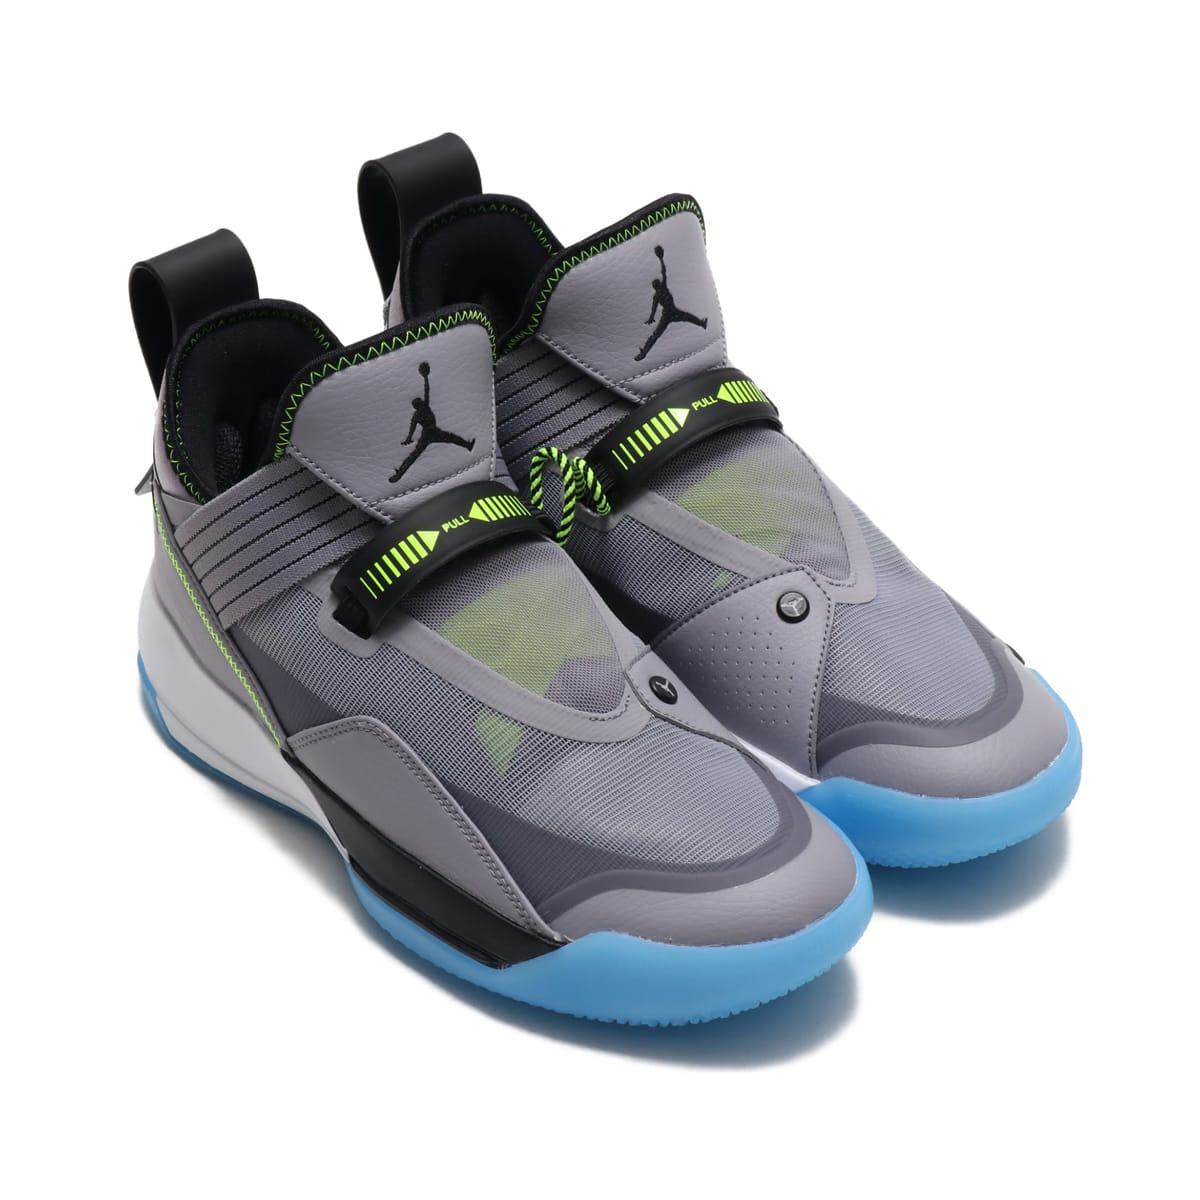 JORDAN BRAND AIR JORDAN XXXIII SE PF CEMENT GREY/BLACK-SAIL-VOLT 19FA-S_photo_large